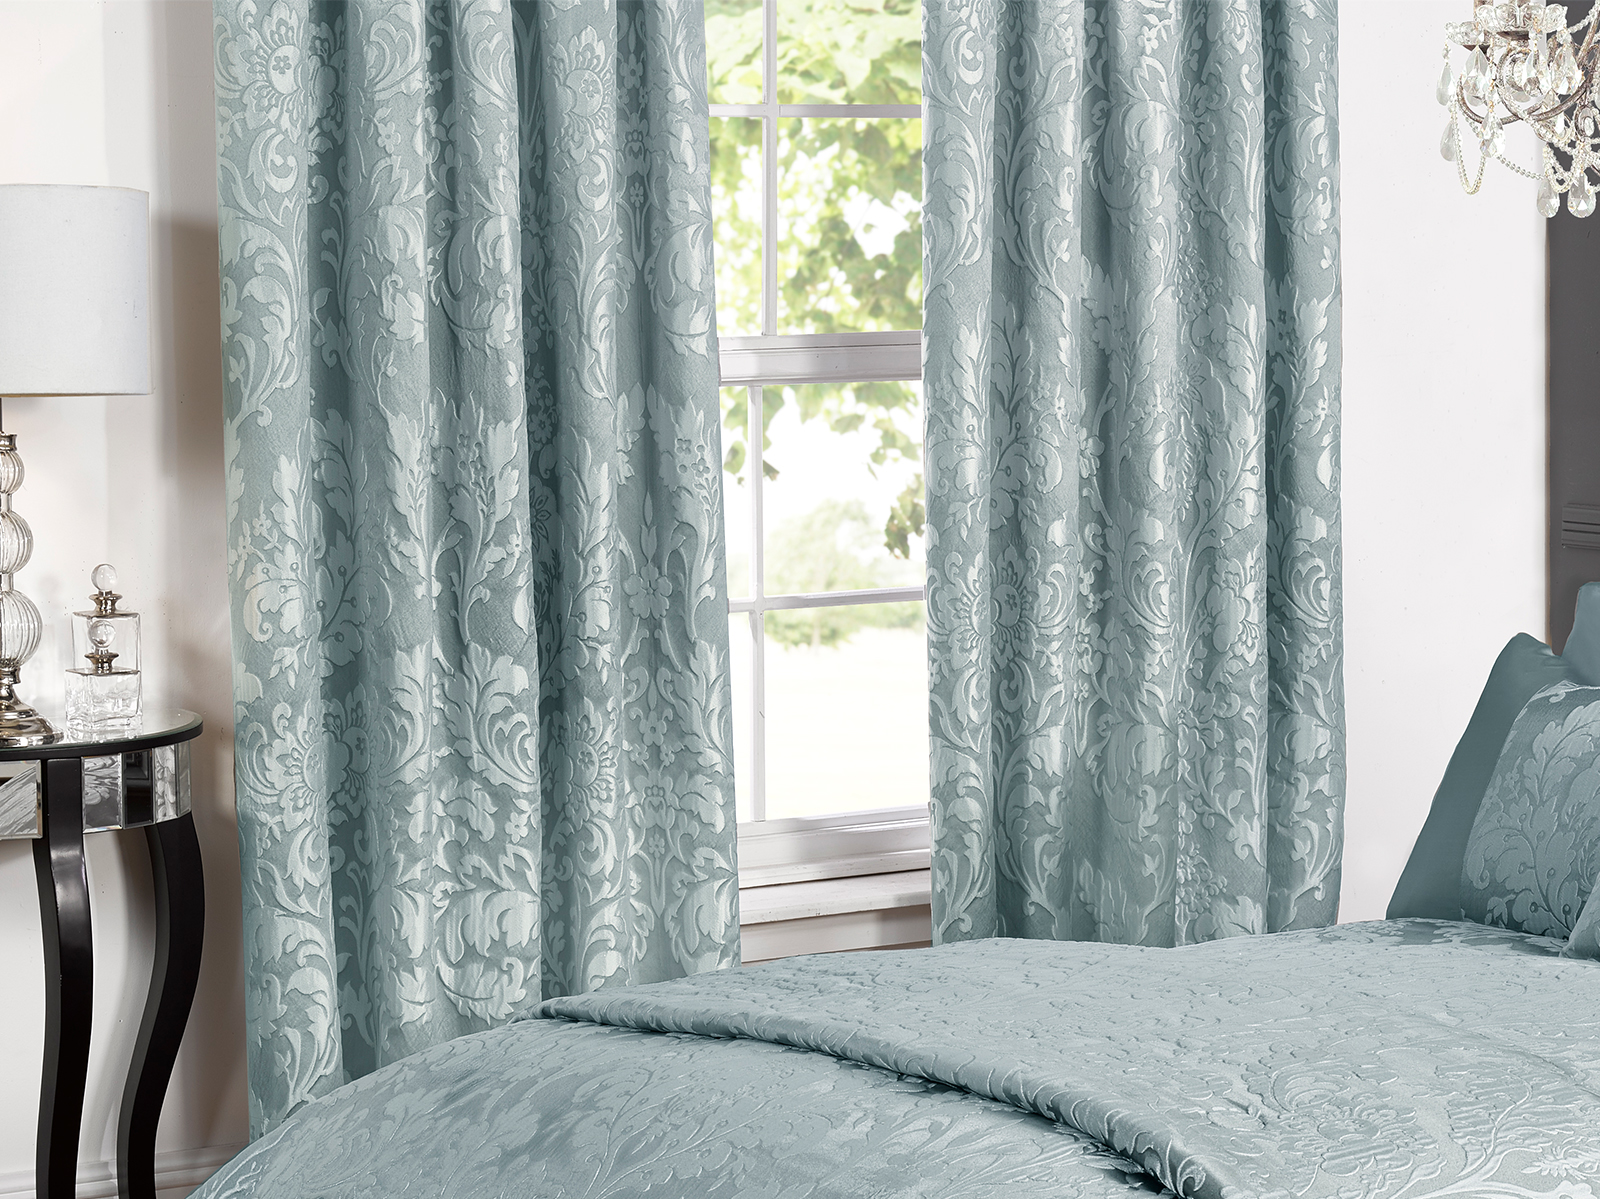 Deluxe Boston Jacquard Damask Lined Curtains In Duck Egg